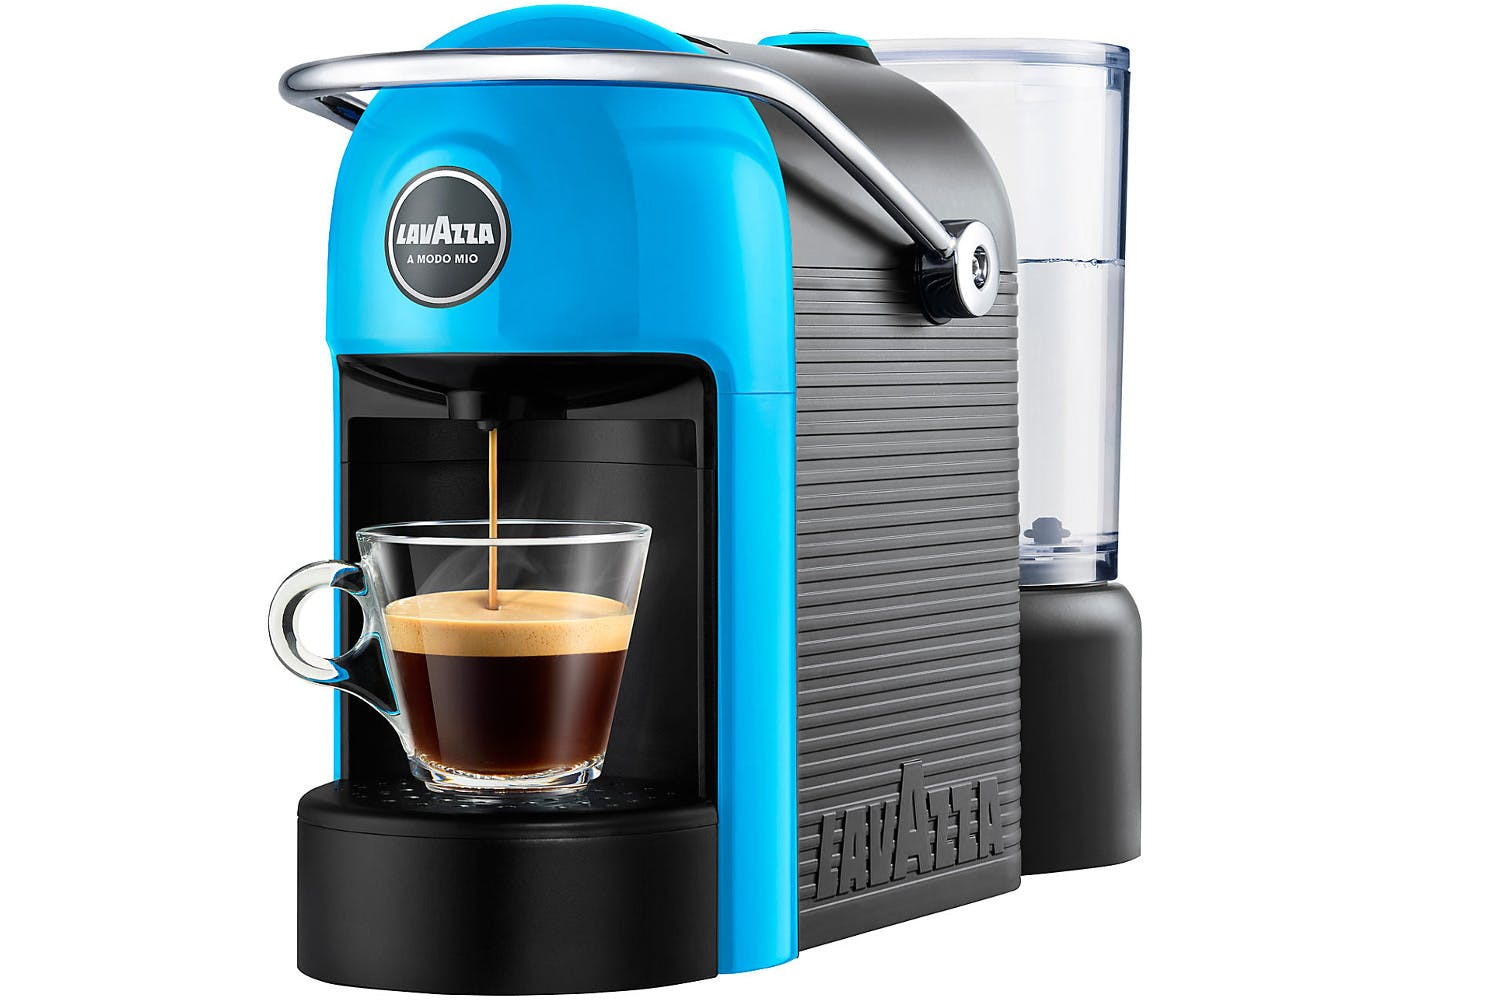 lavazza a modo mio jolie coffee machine blue ireland. Black Bedroom Furniture Sets. Home Design Ideas